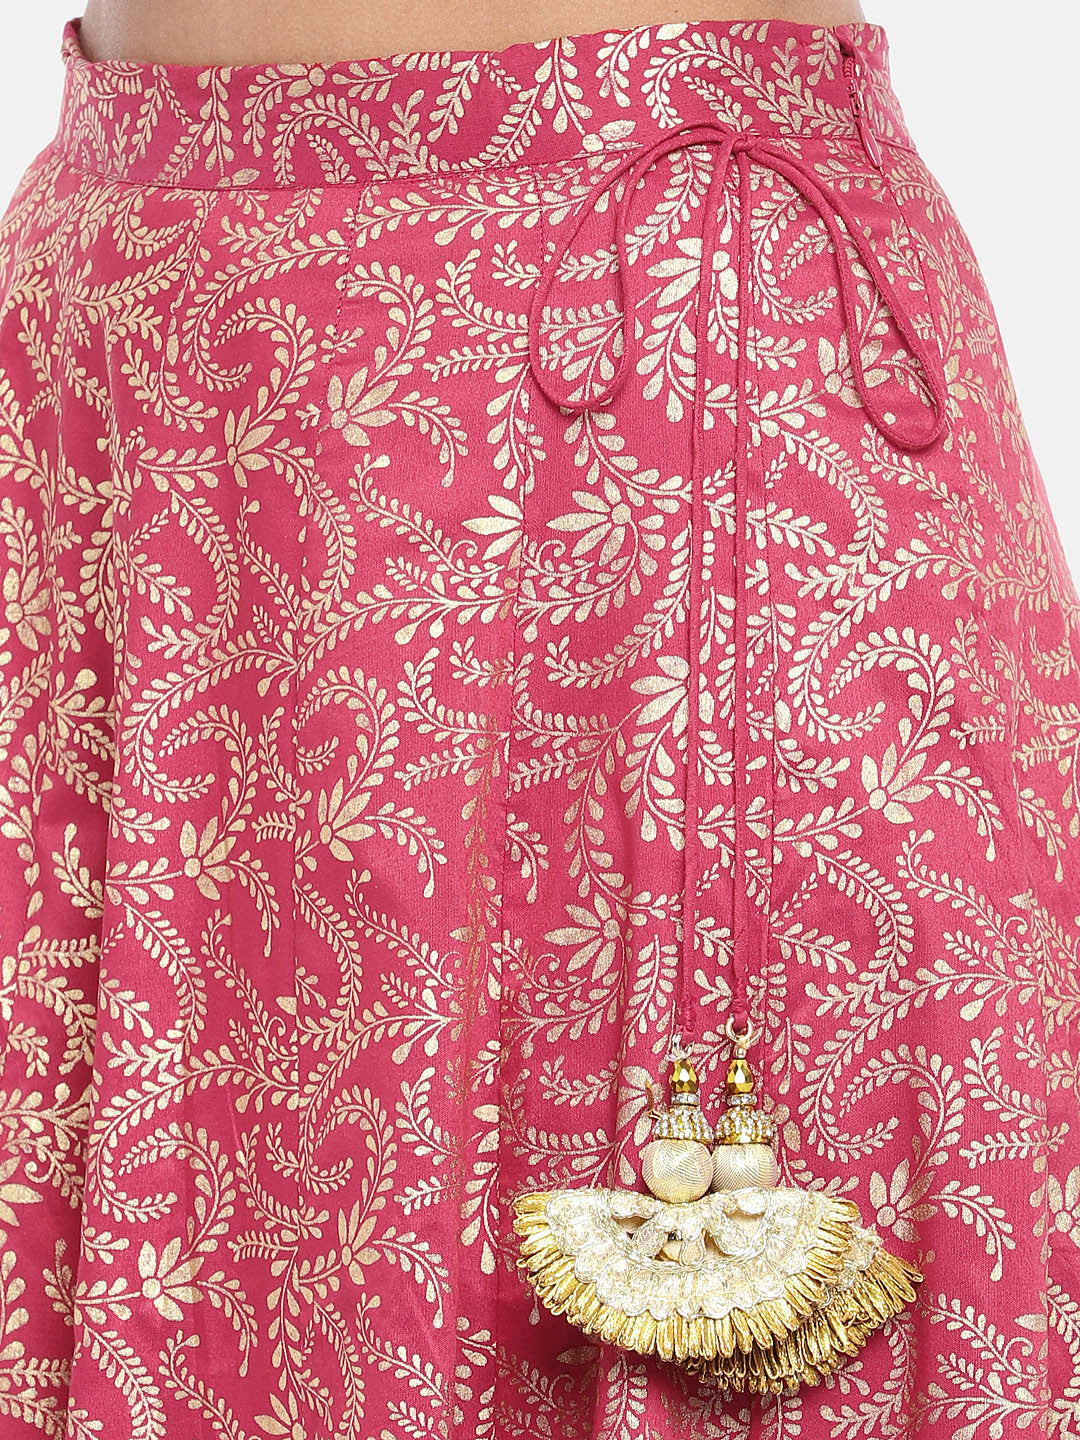 Pink & Gold-Toned Printed Flared Skirt-5